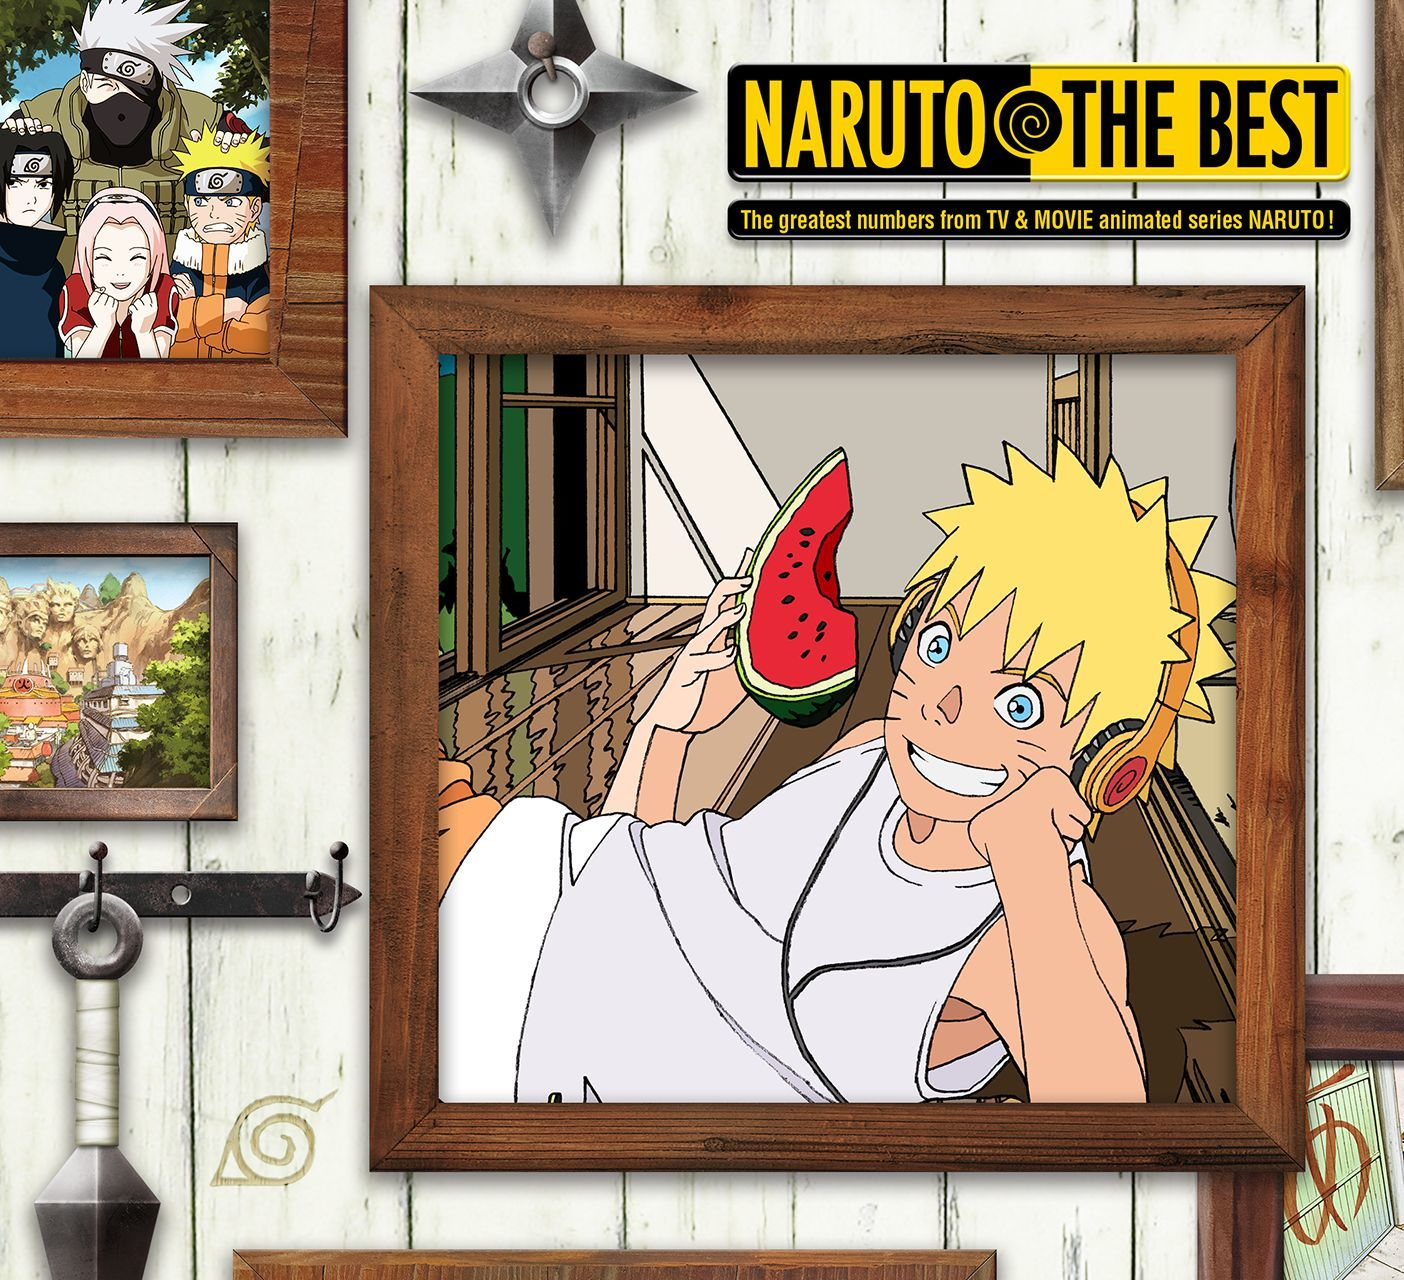 NARUTO THE BEST ©岸本斉史 スコット/集英社・テレビ東京・ぴえろ